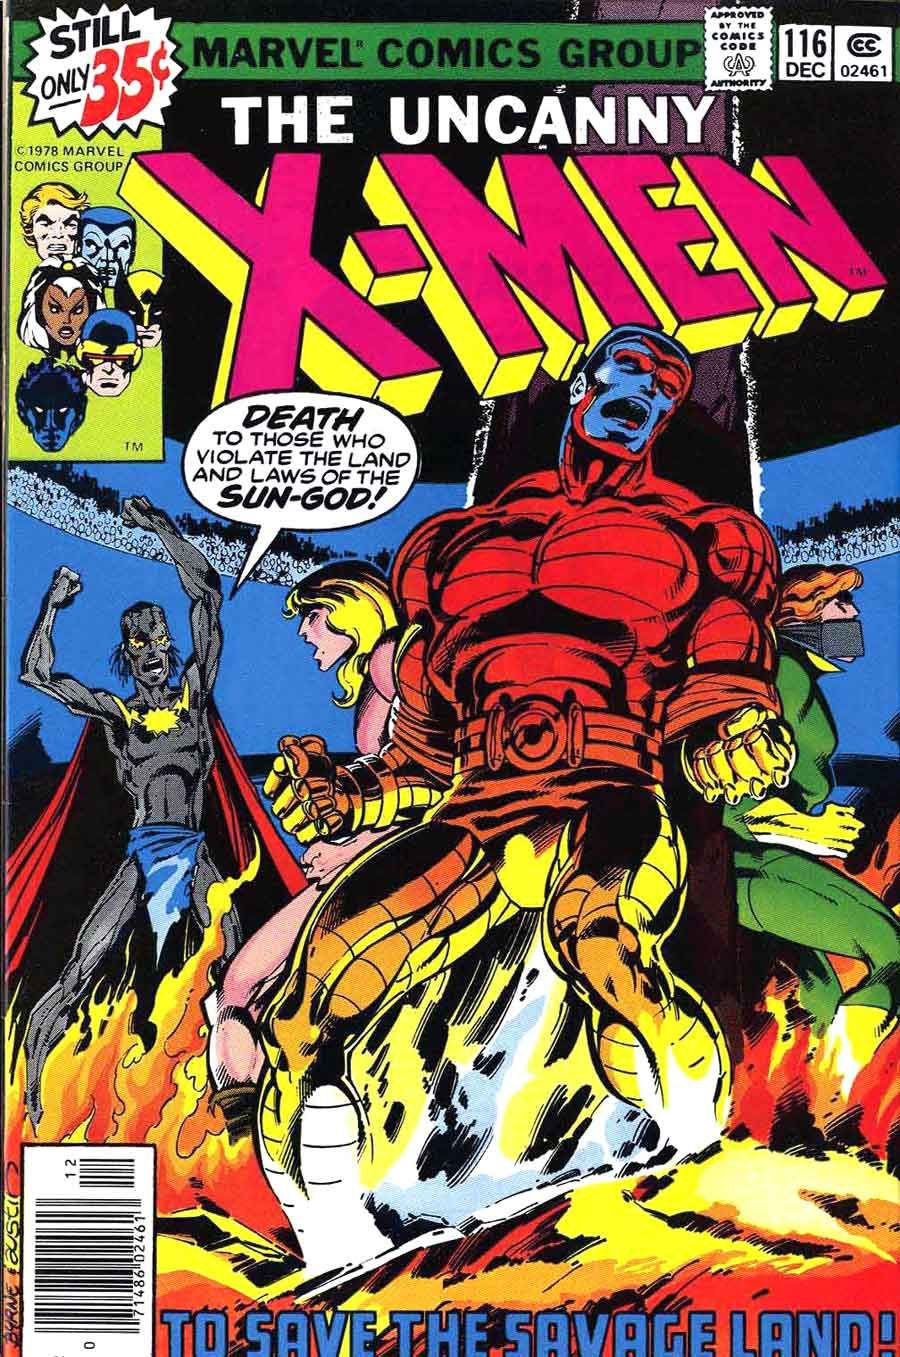 X Men John Byrne Blog 1950s 1960s 1970s 1980s X Men 116 John Byrne Art Cover Comic Book Covers Comics Comic Covers